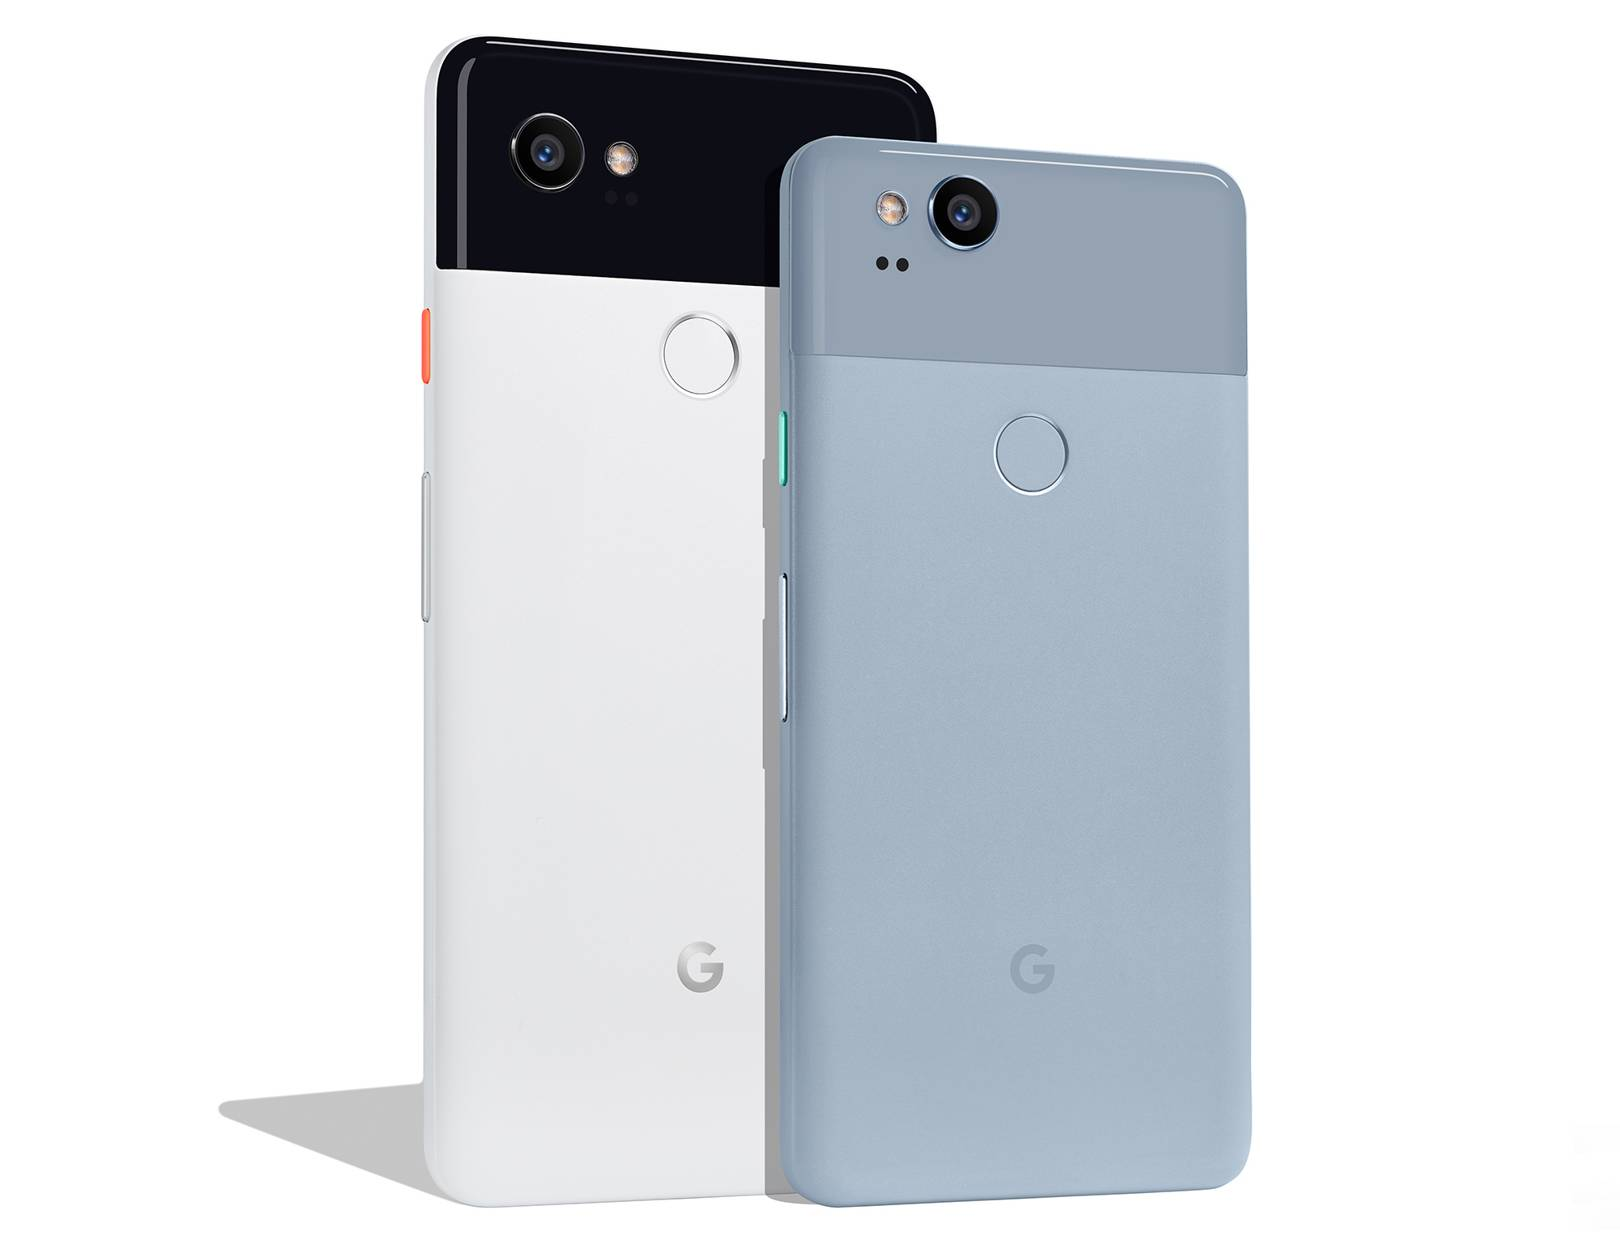 Pixel 2 Vs Iphone 8 Galaxy S8 Which One Should You Buy Wired Uk Coupling Fan And Lighting Switches Home Improvement Stack Exchange